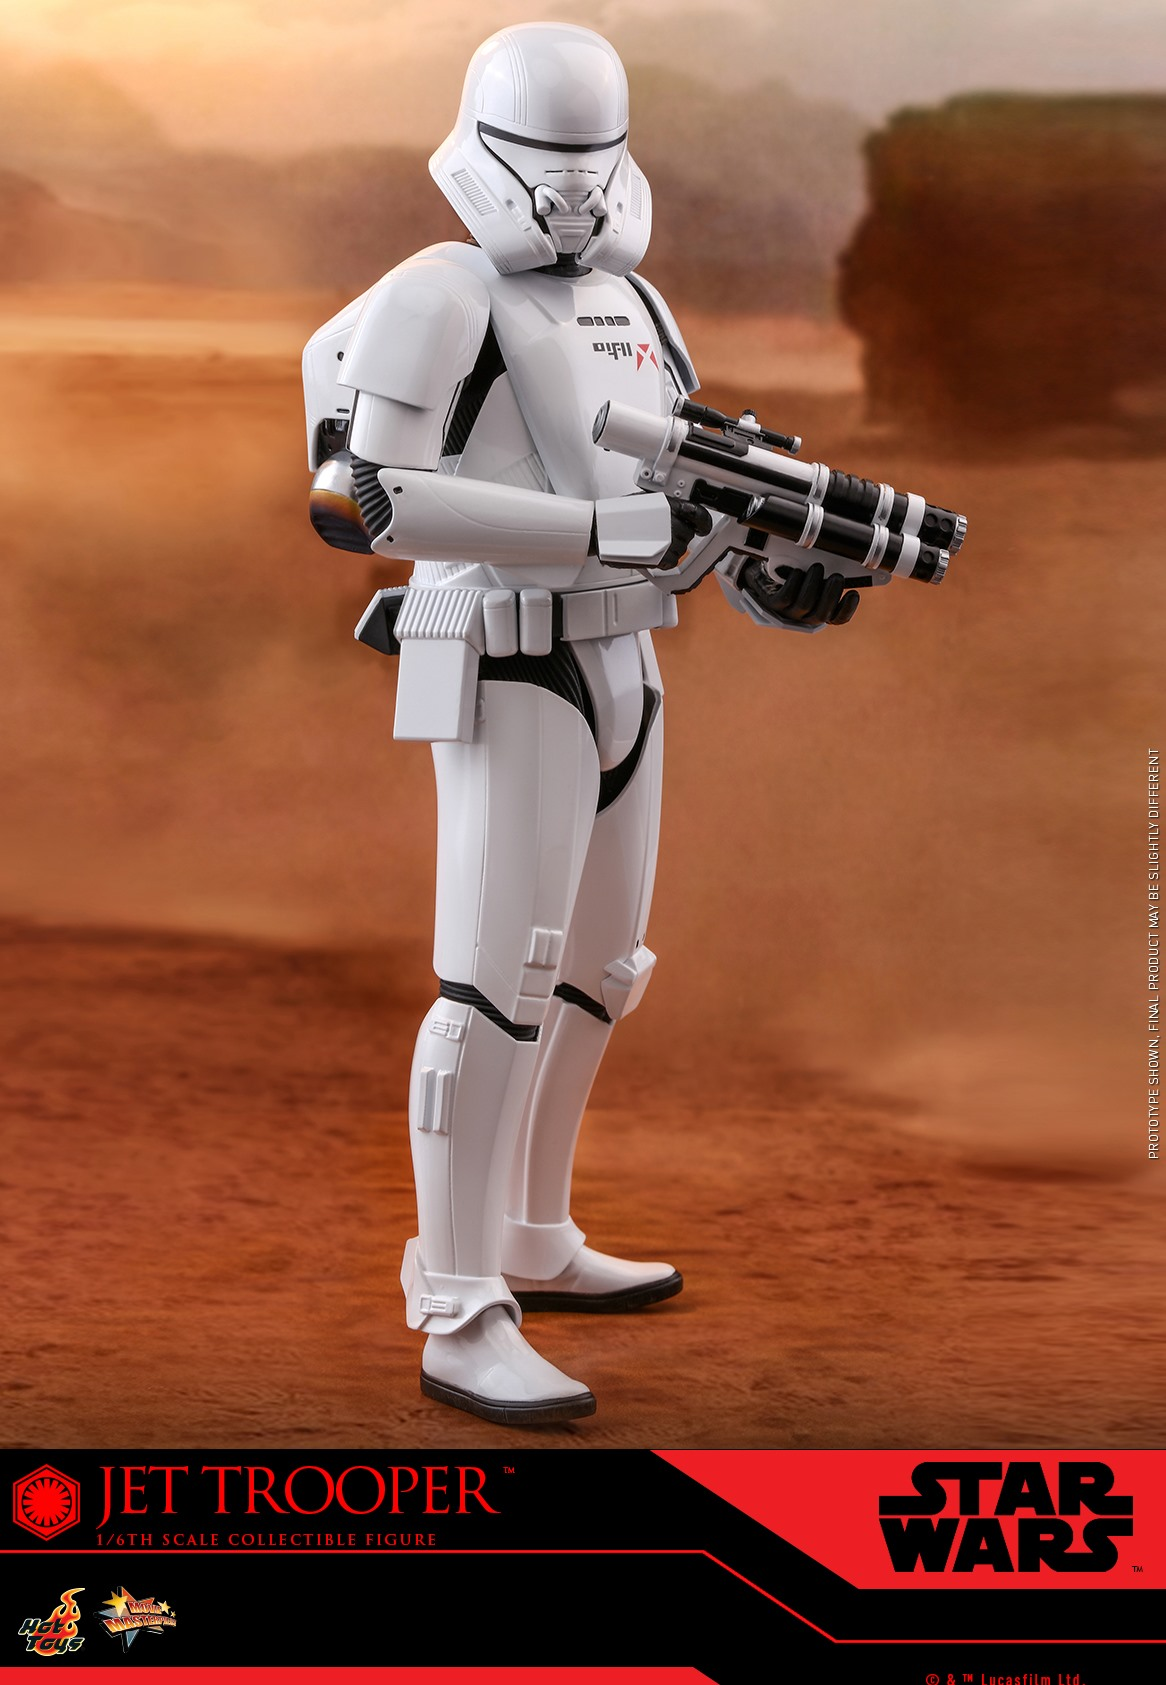 Pre-Order Hot Toys Star Wars Jet Trooper 1:6th Figure